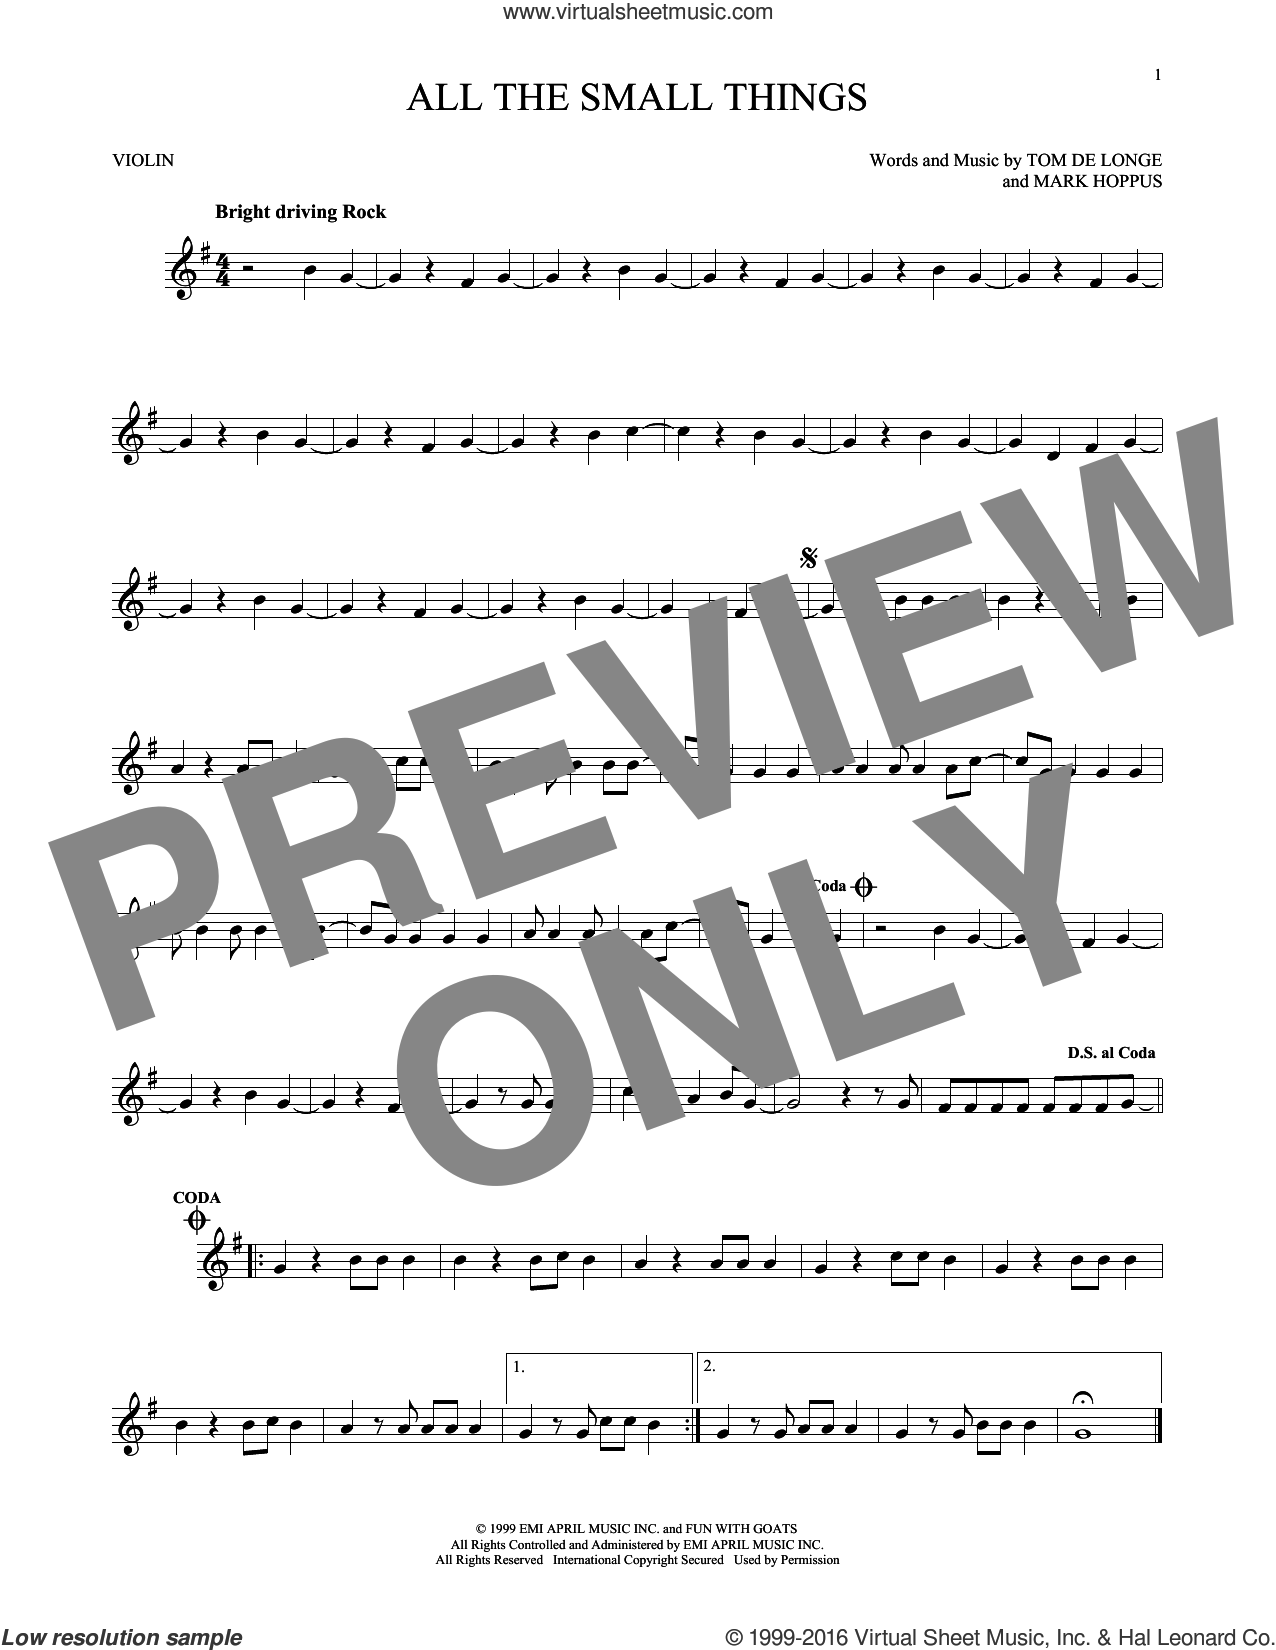 All The Small Things sheet music for violin solo by Blink 182, Mark Hoppus, Tom DeLonge and Travis Barker, intermediate skill level